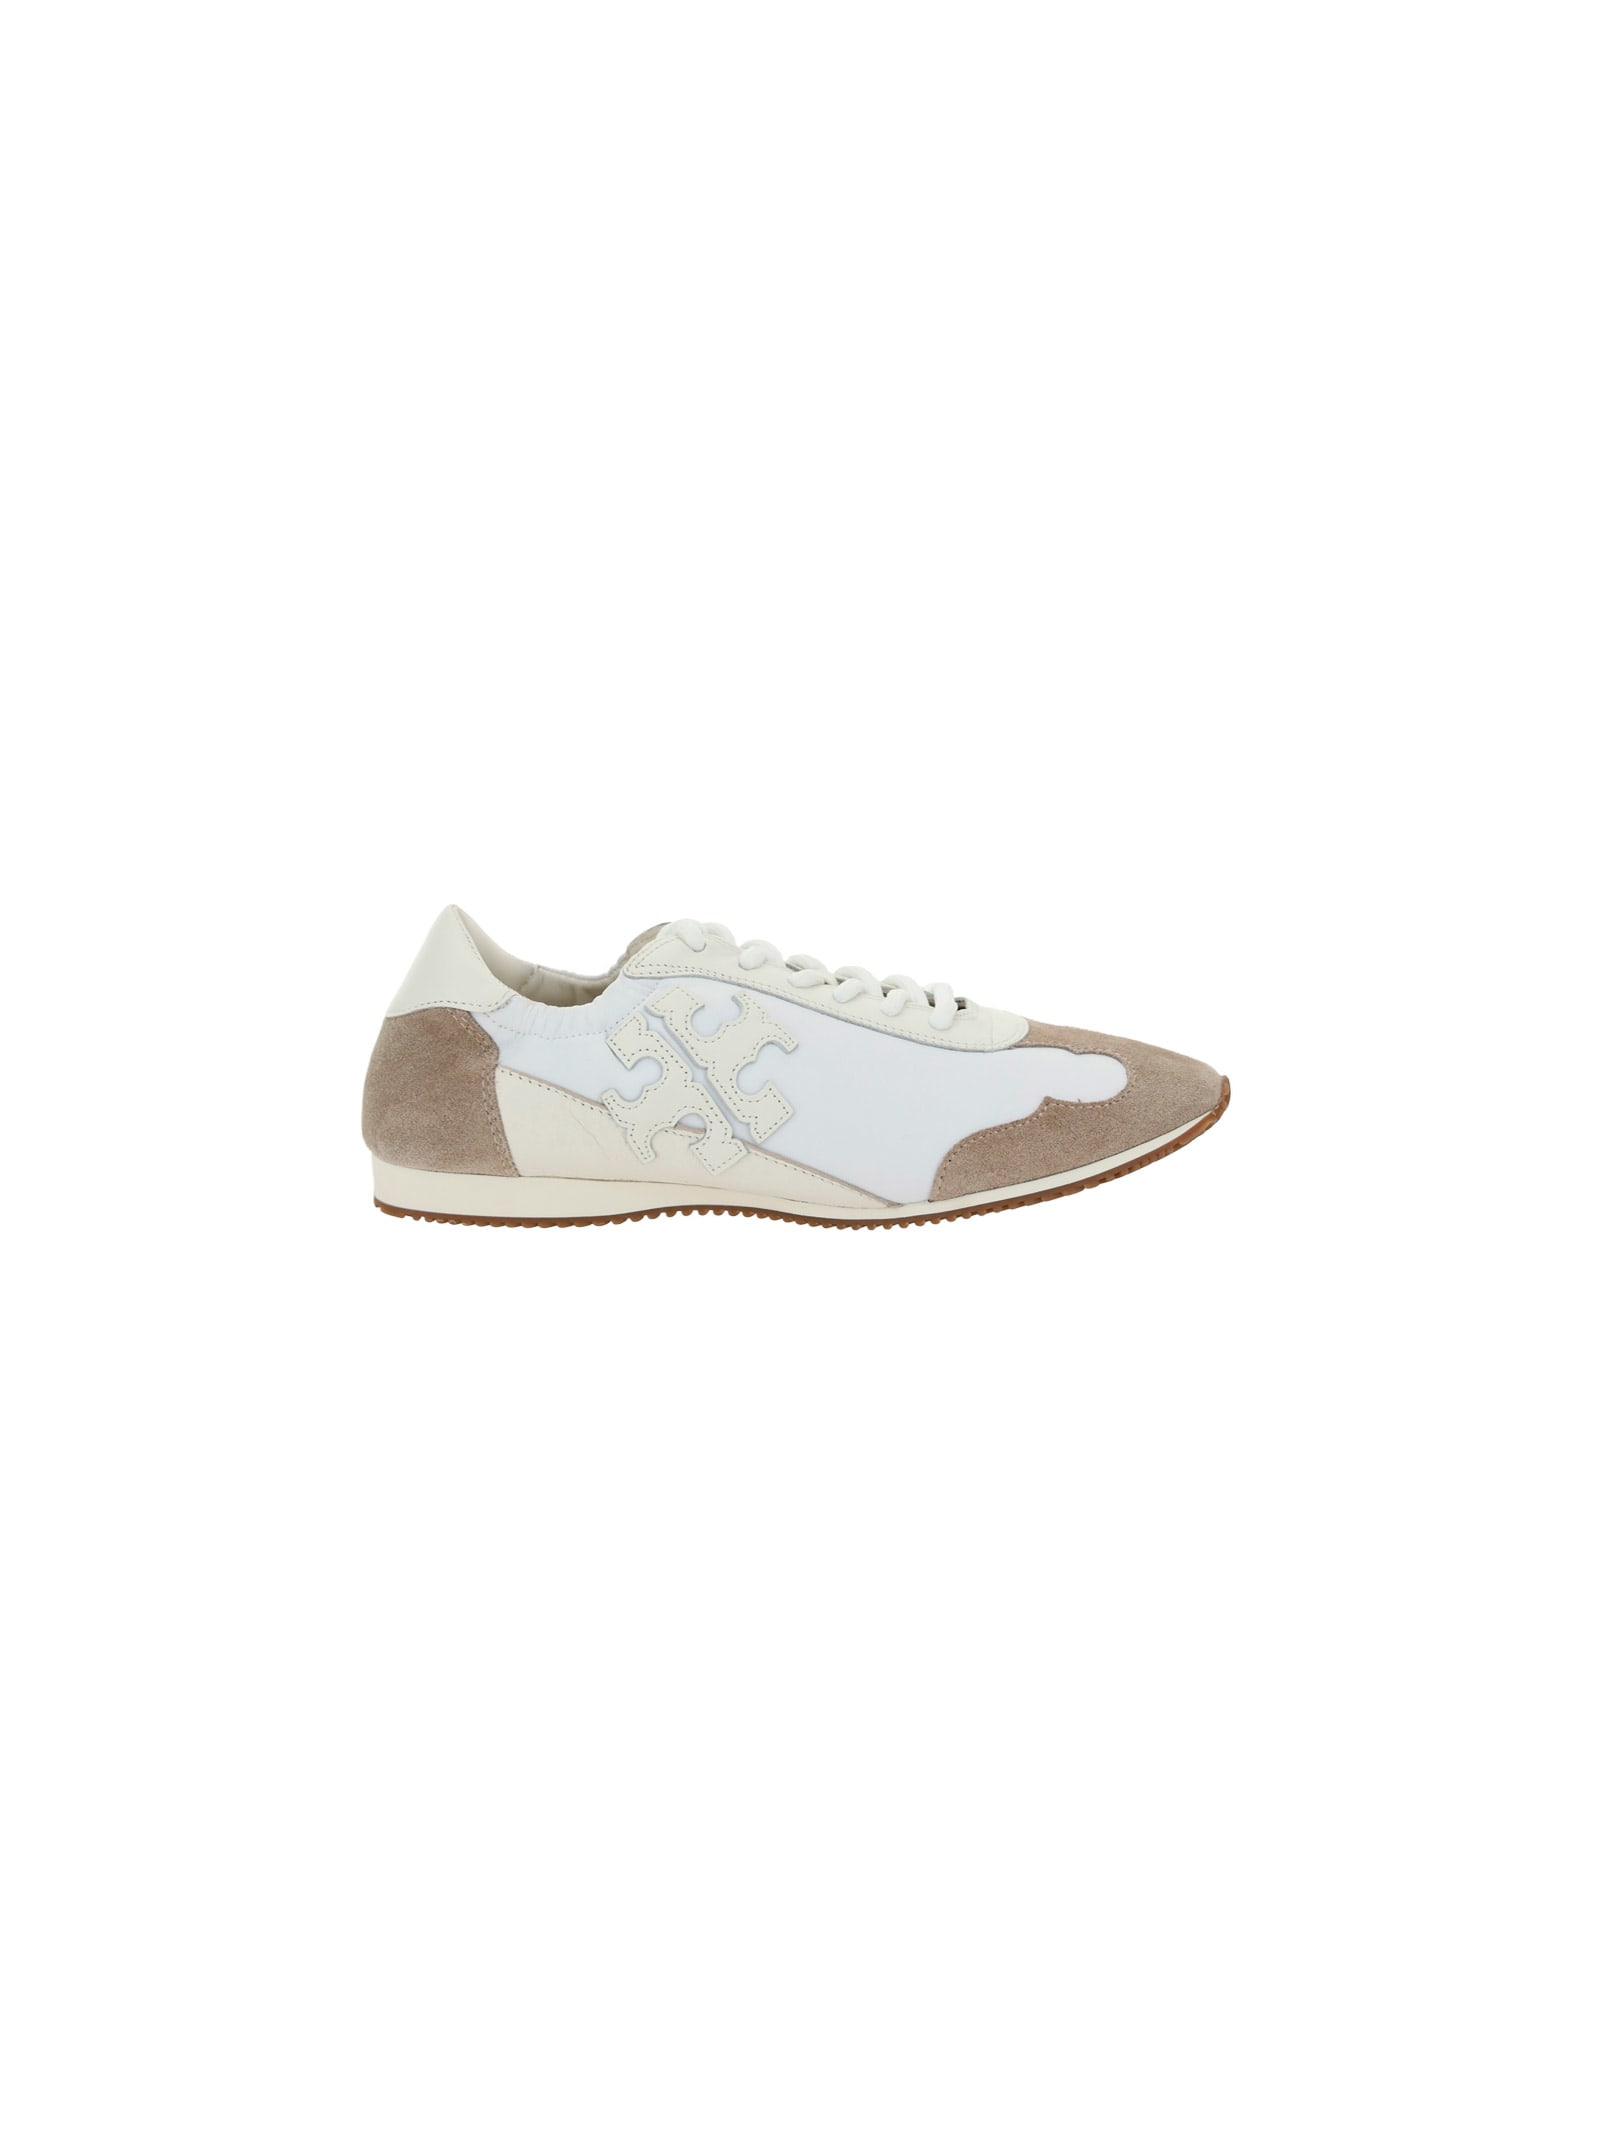 Buy Tory Burch Sneakers online, shop Tory Burch shoes with free shipping